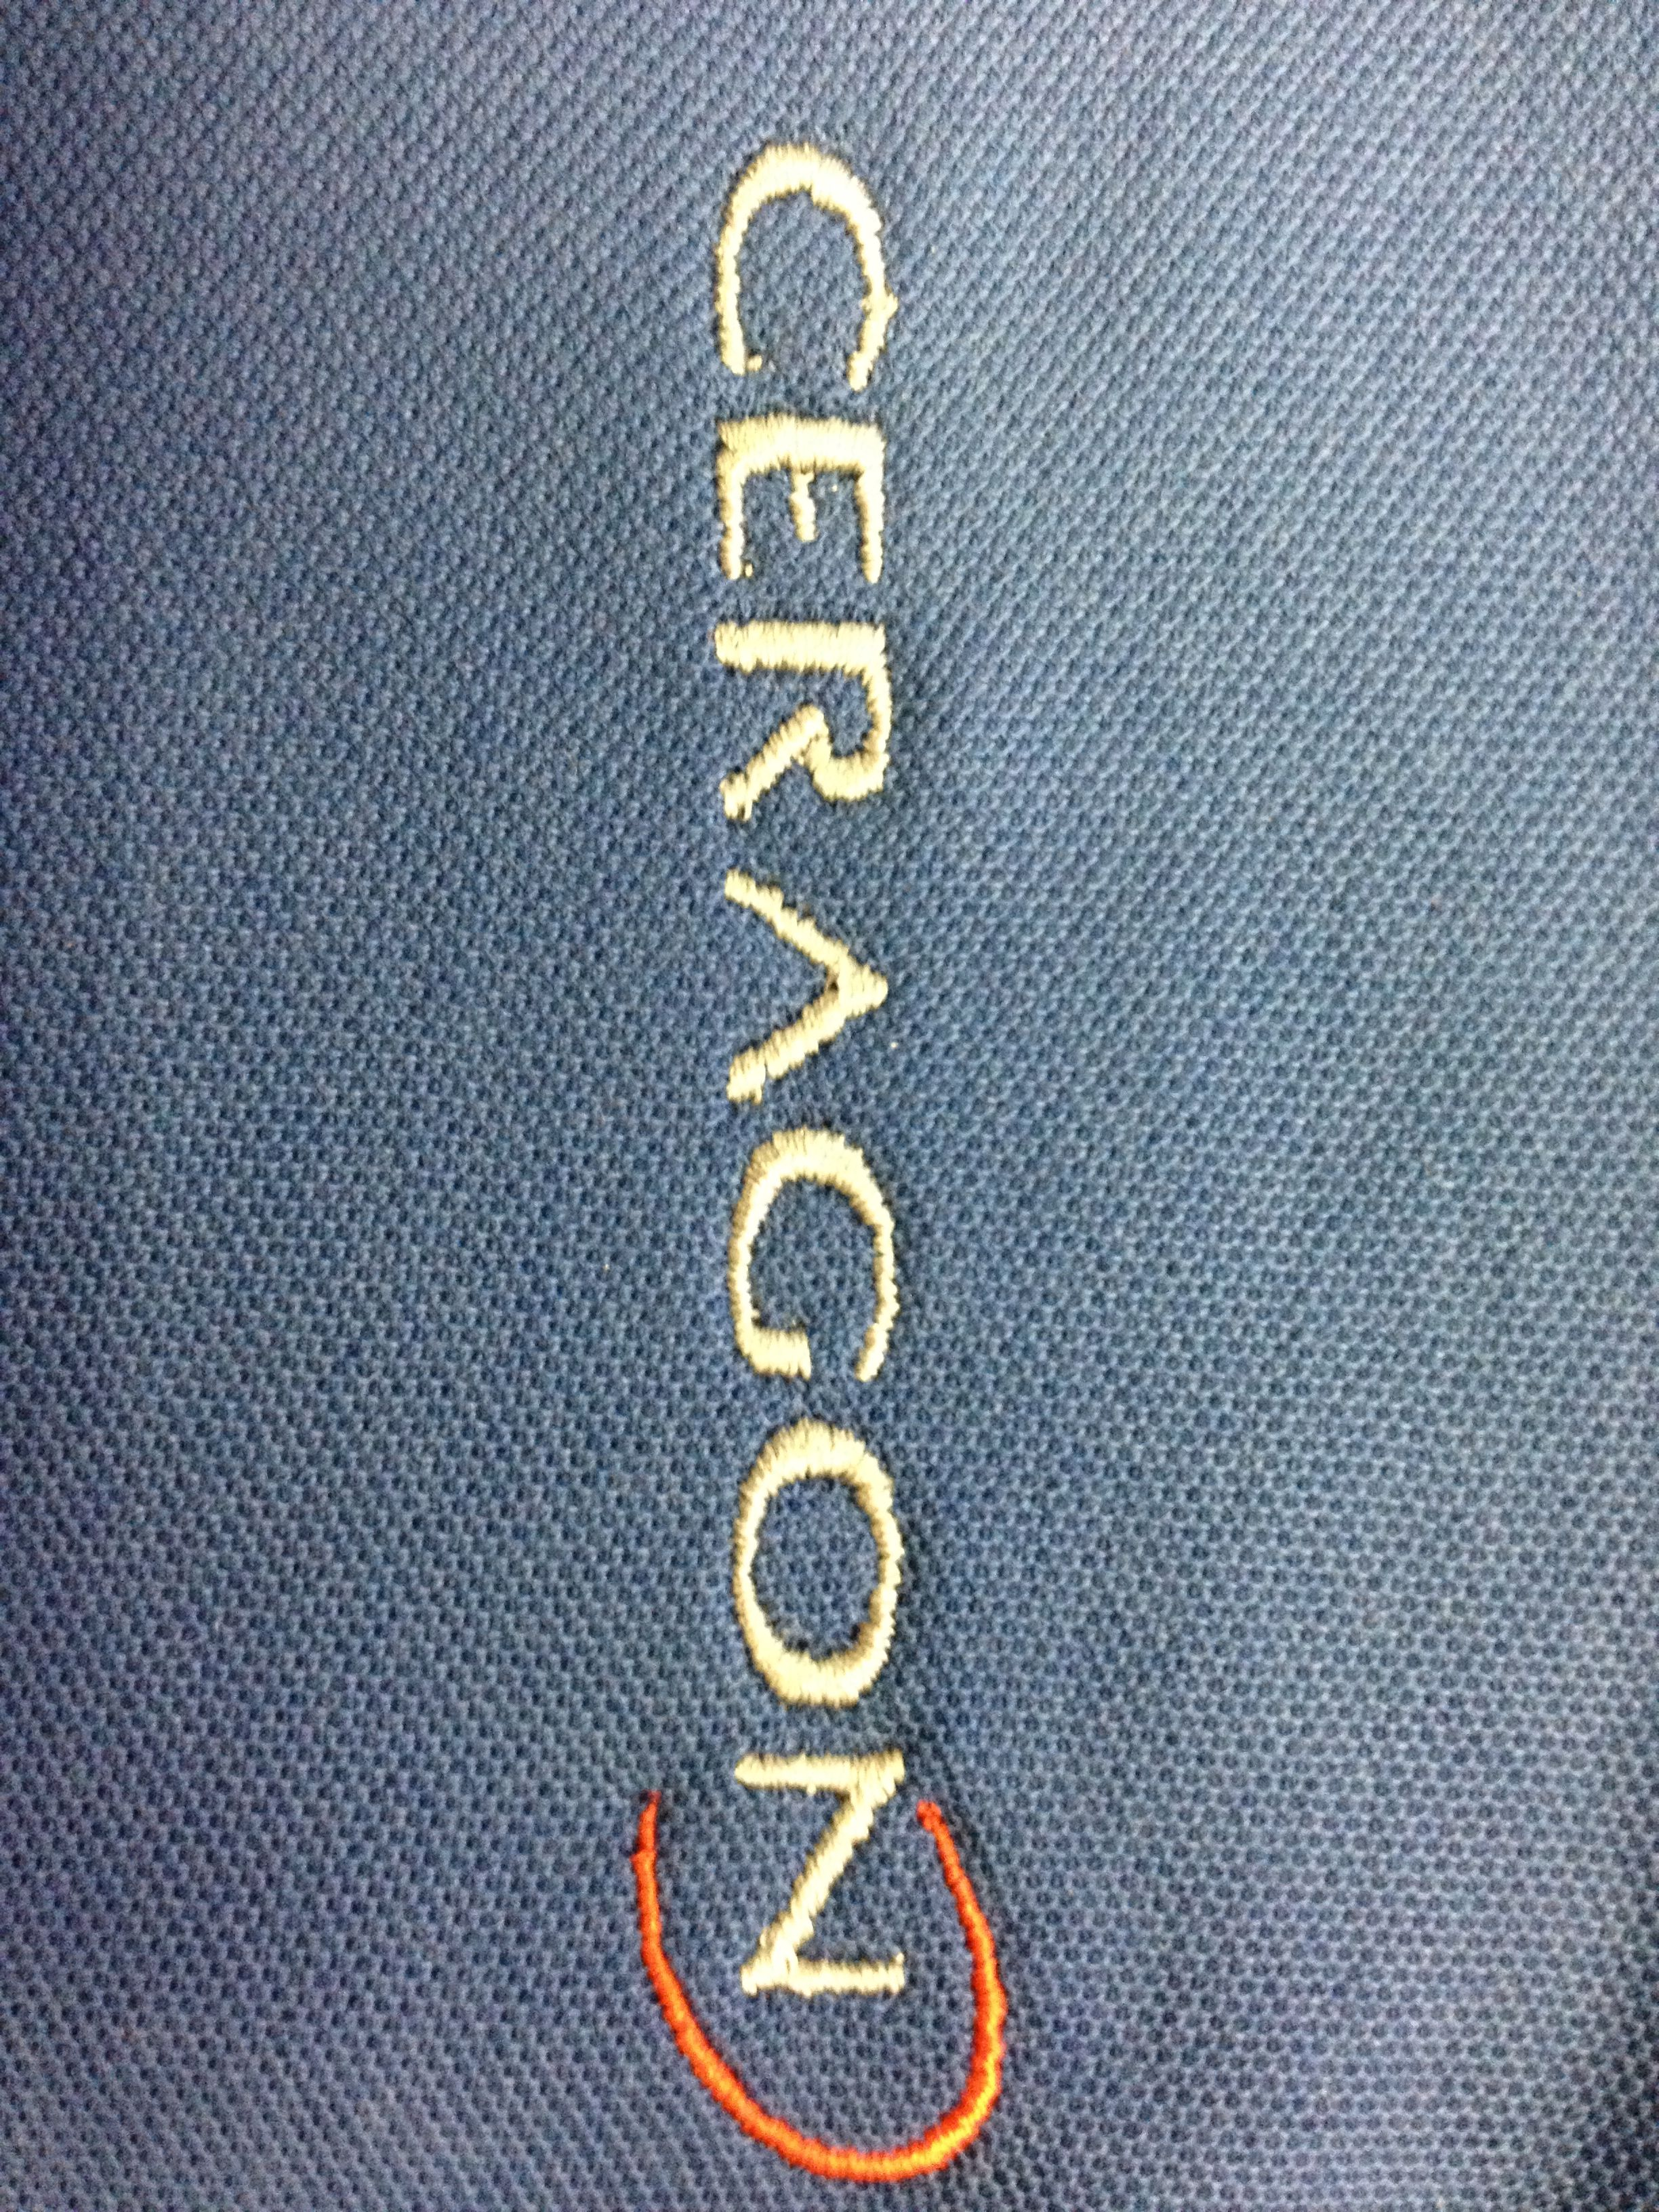 Embroidery is perfect for business promotions and uniforms.